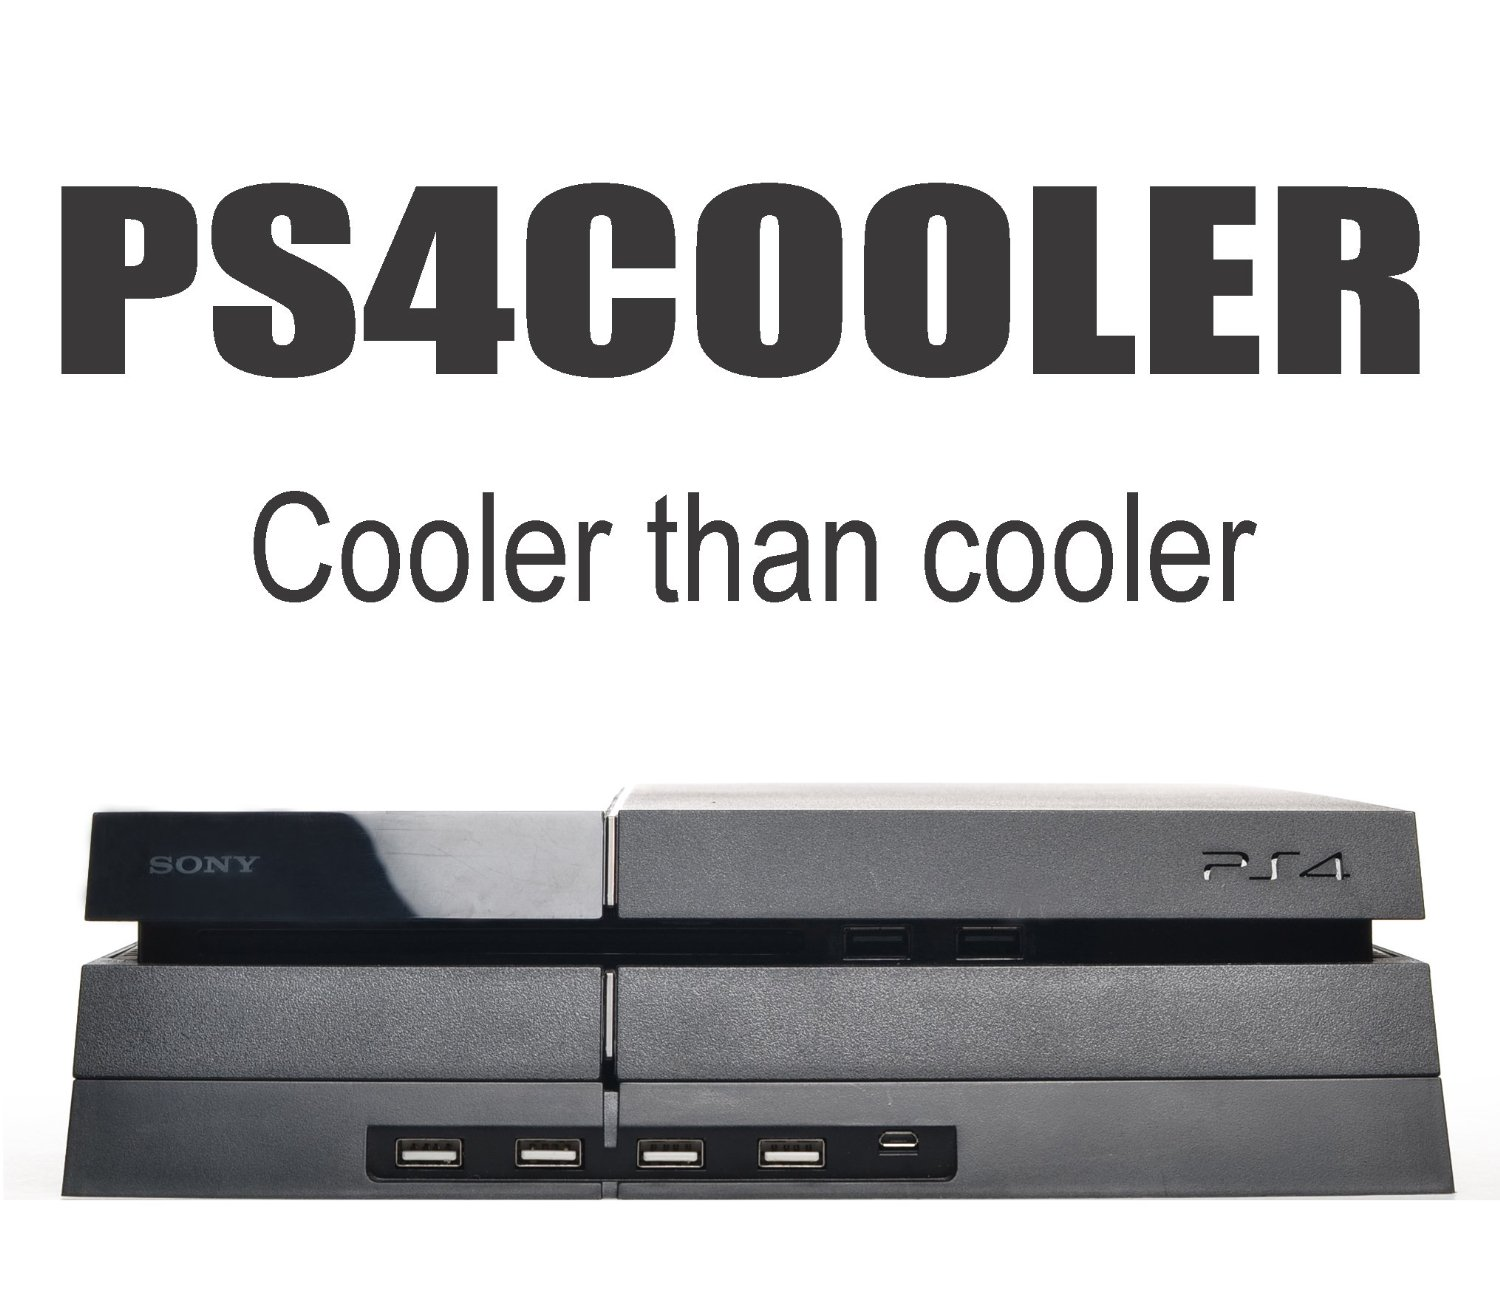 Refrigere seu PS4 com PlayStation Cooler